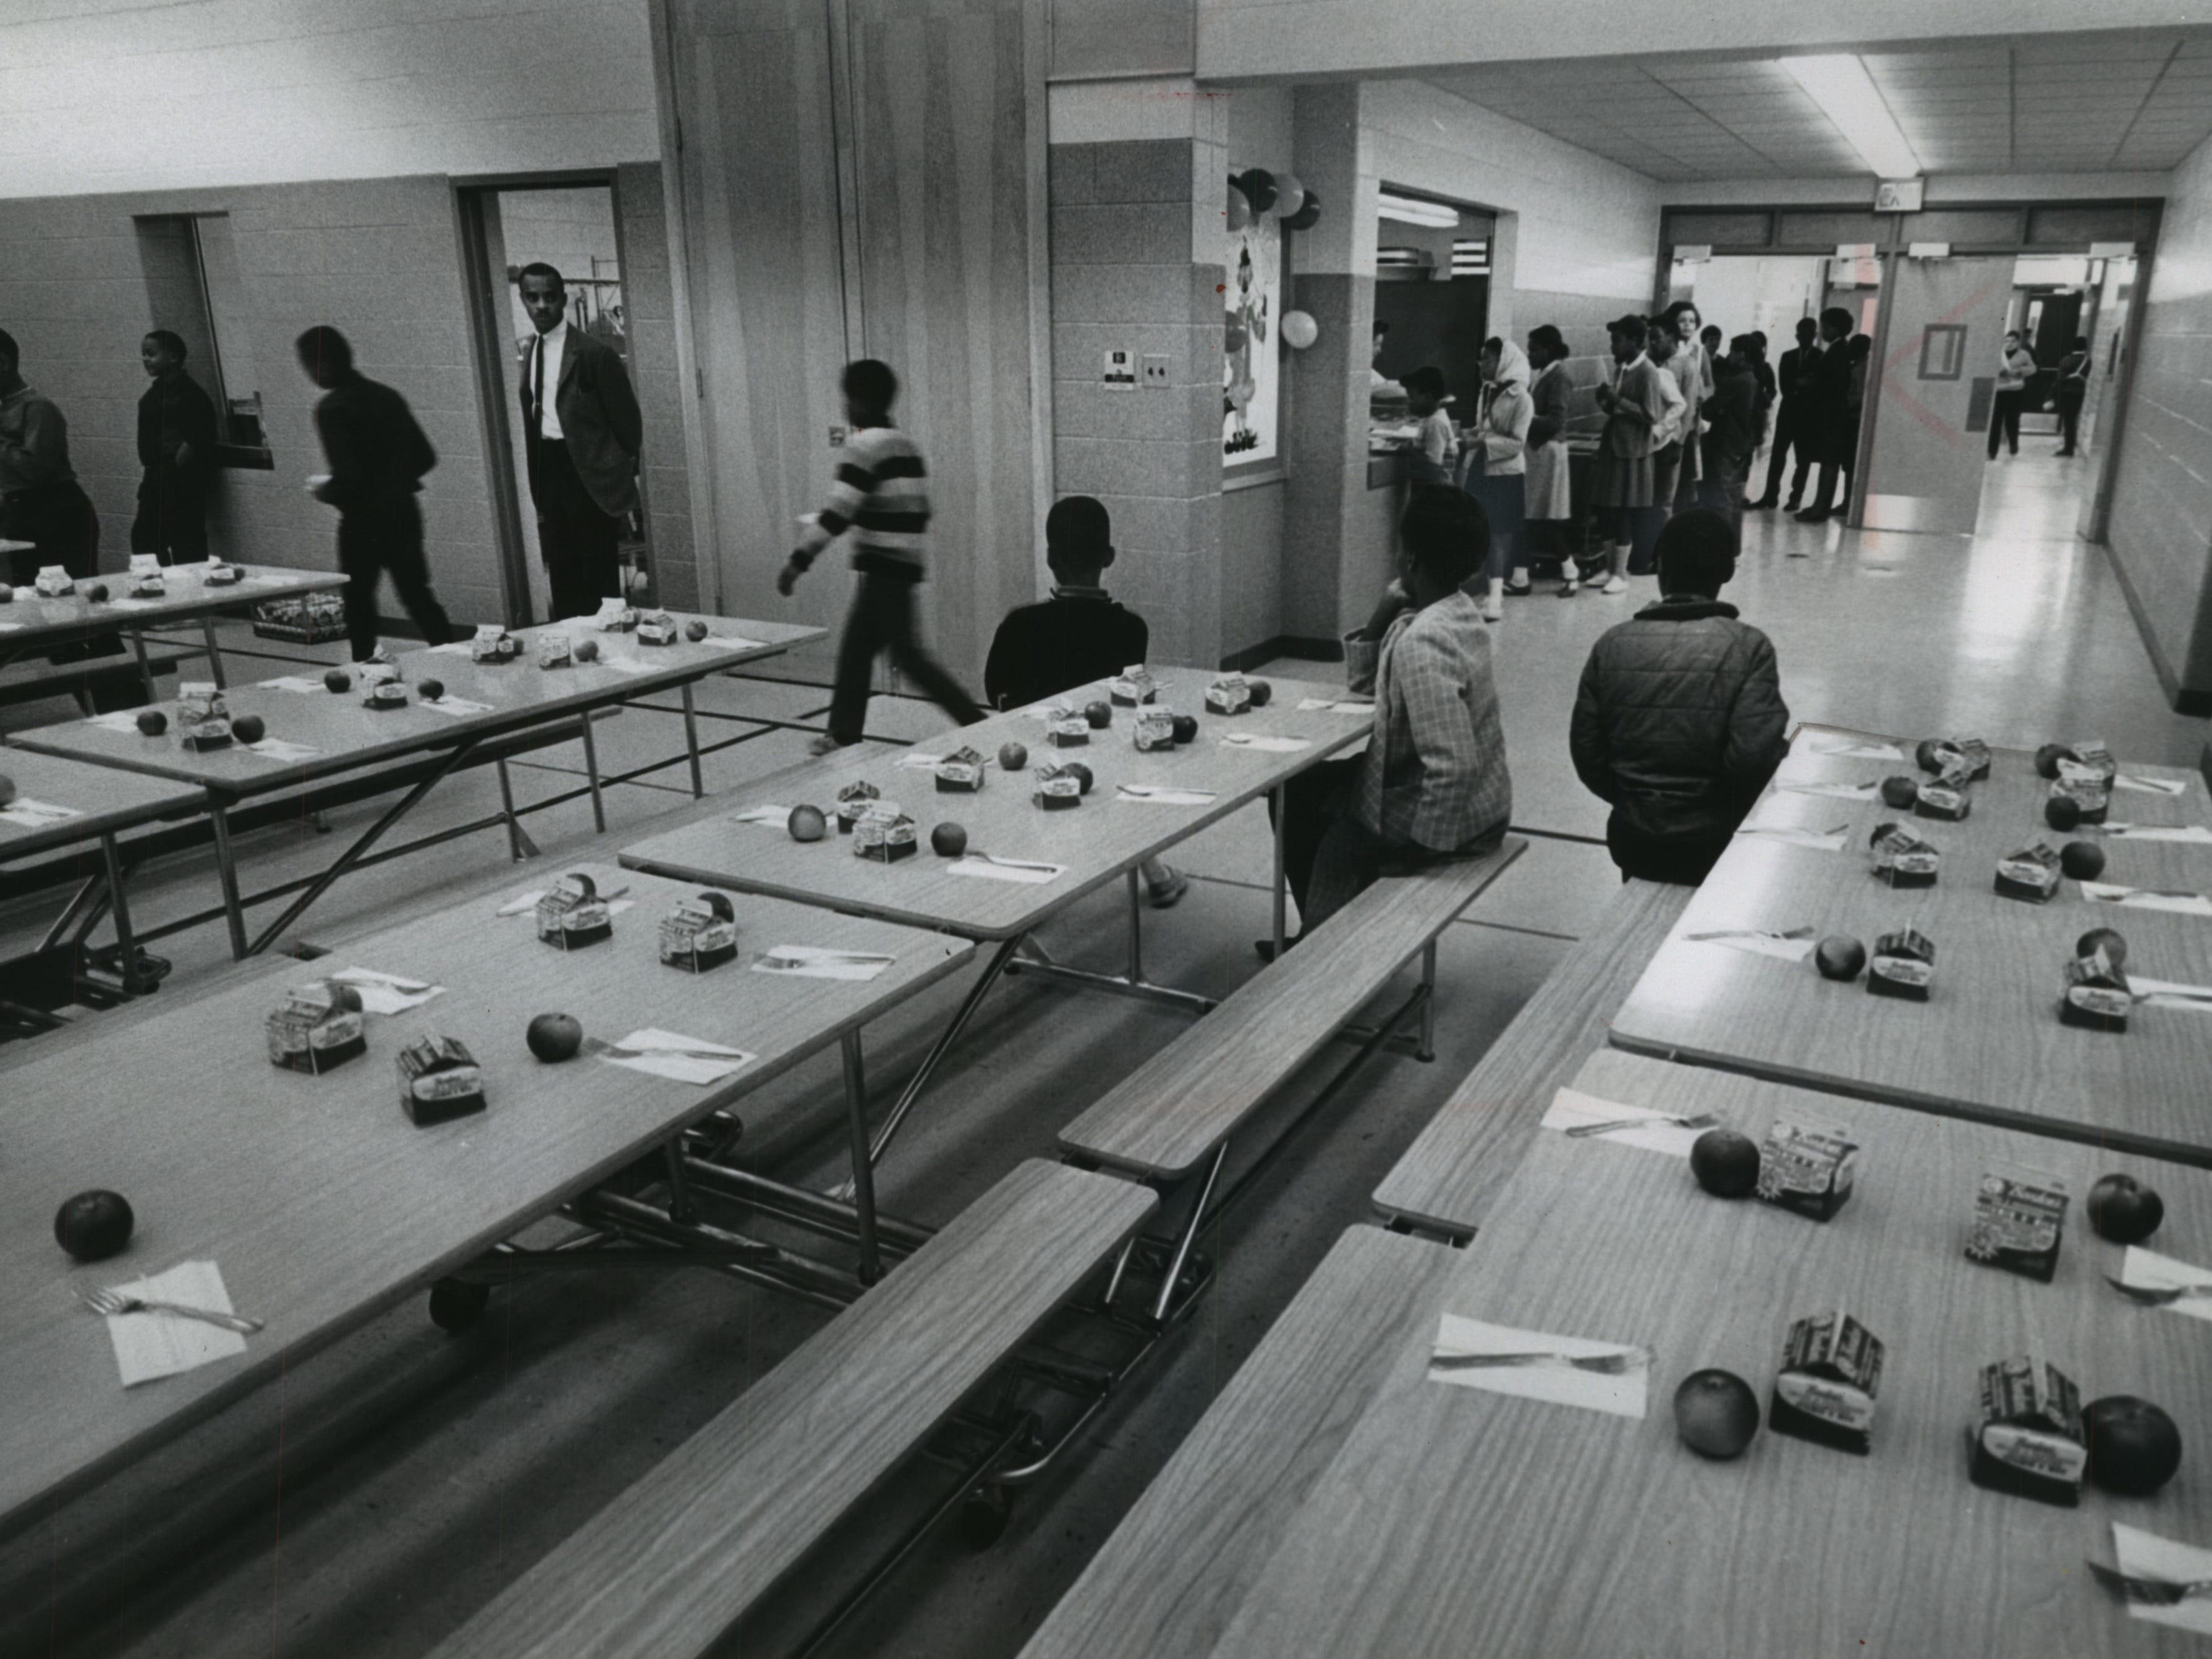 1968: Milk cartons are neatly laid out on tables as pupils start moving through the lunch line at Holmes Elementary School, 2463 N. Buffum St. But milk consumption among the U.S. population was about to change. Between 1970 and 2012, U.S. milk consumption dropped by more than 27%. And while consumption of cheese products more than doubled, it couldn't make up for milk's loss.